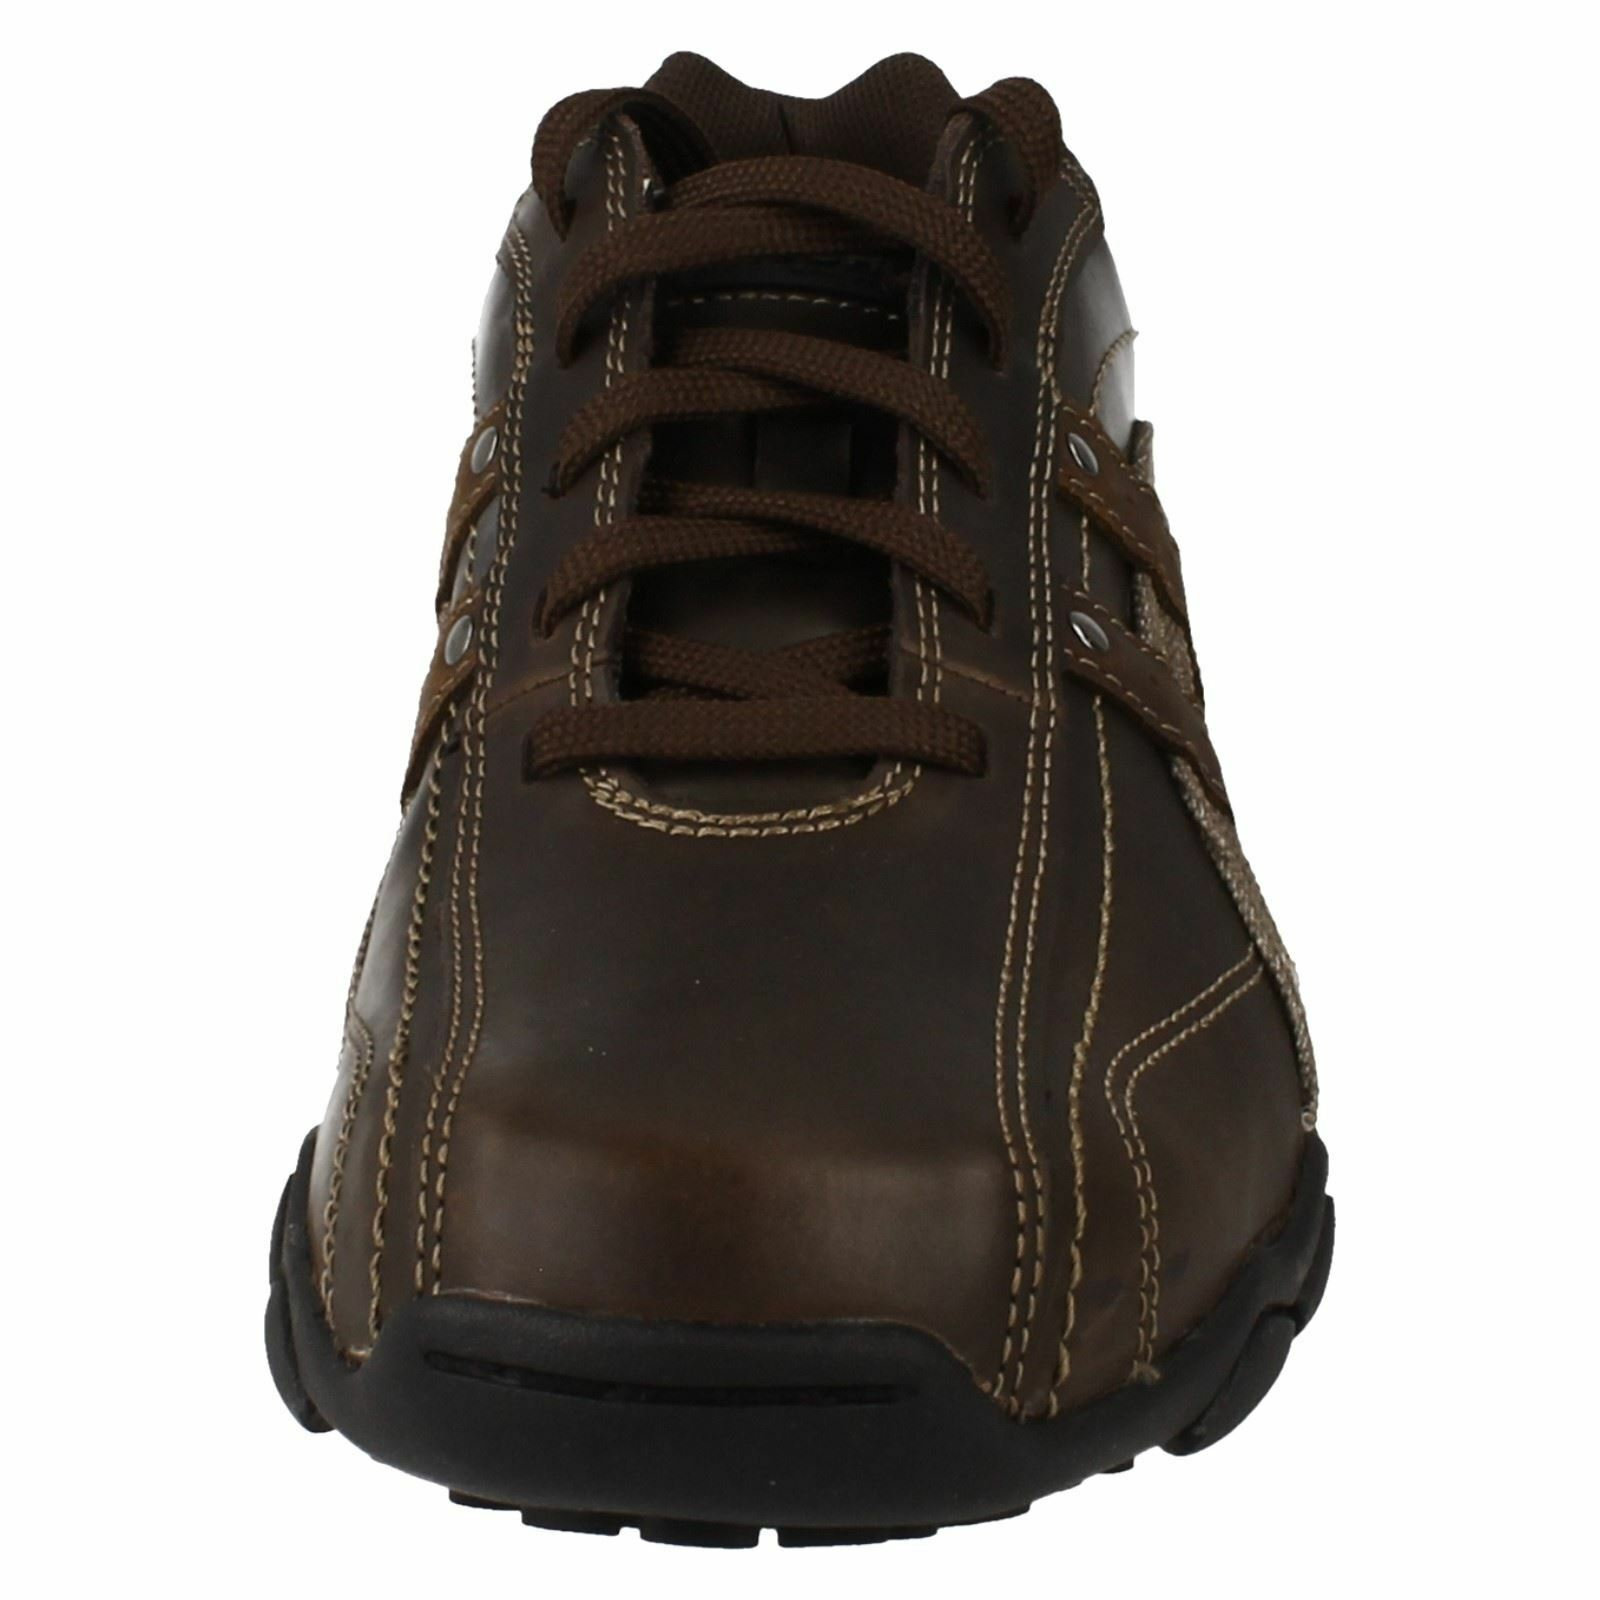 Men's Skechers Fusions Diameter Blake Lace Up Trainers Brown The most popular shoes for men and women